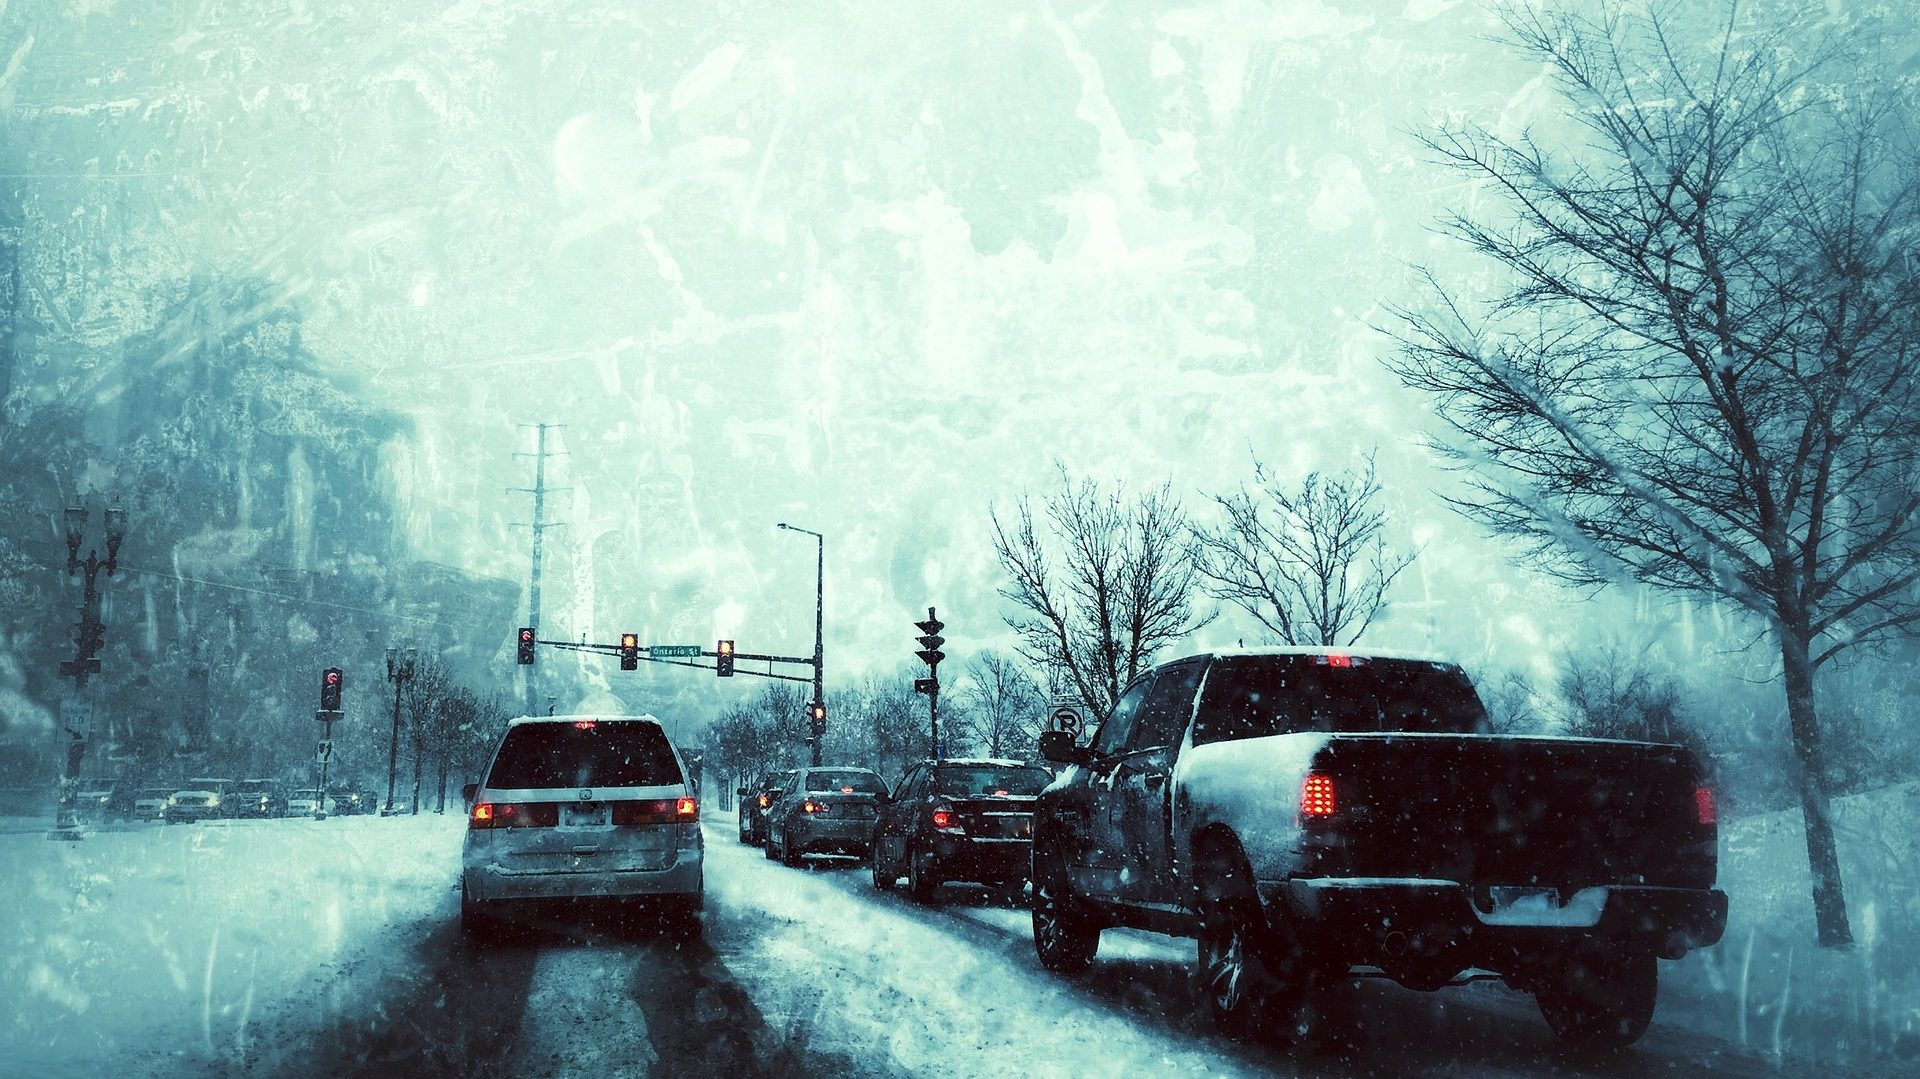 a photo of cars driving on snowy roads